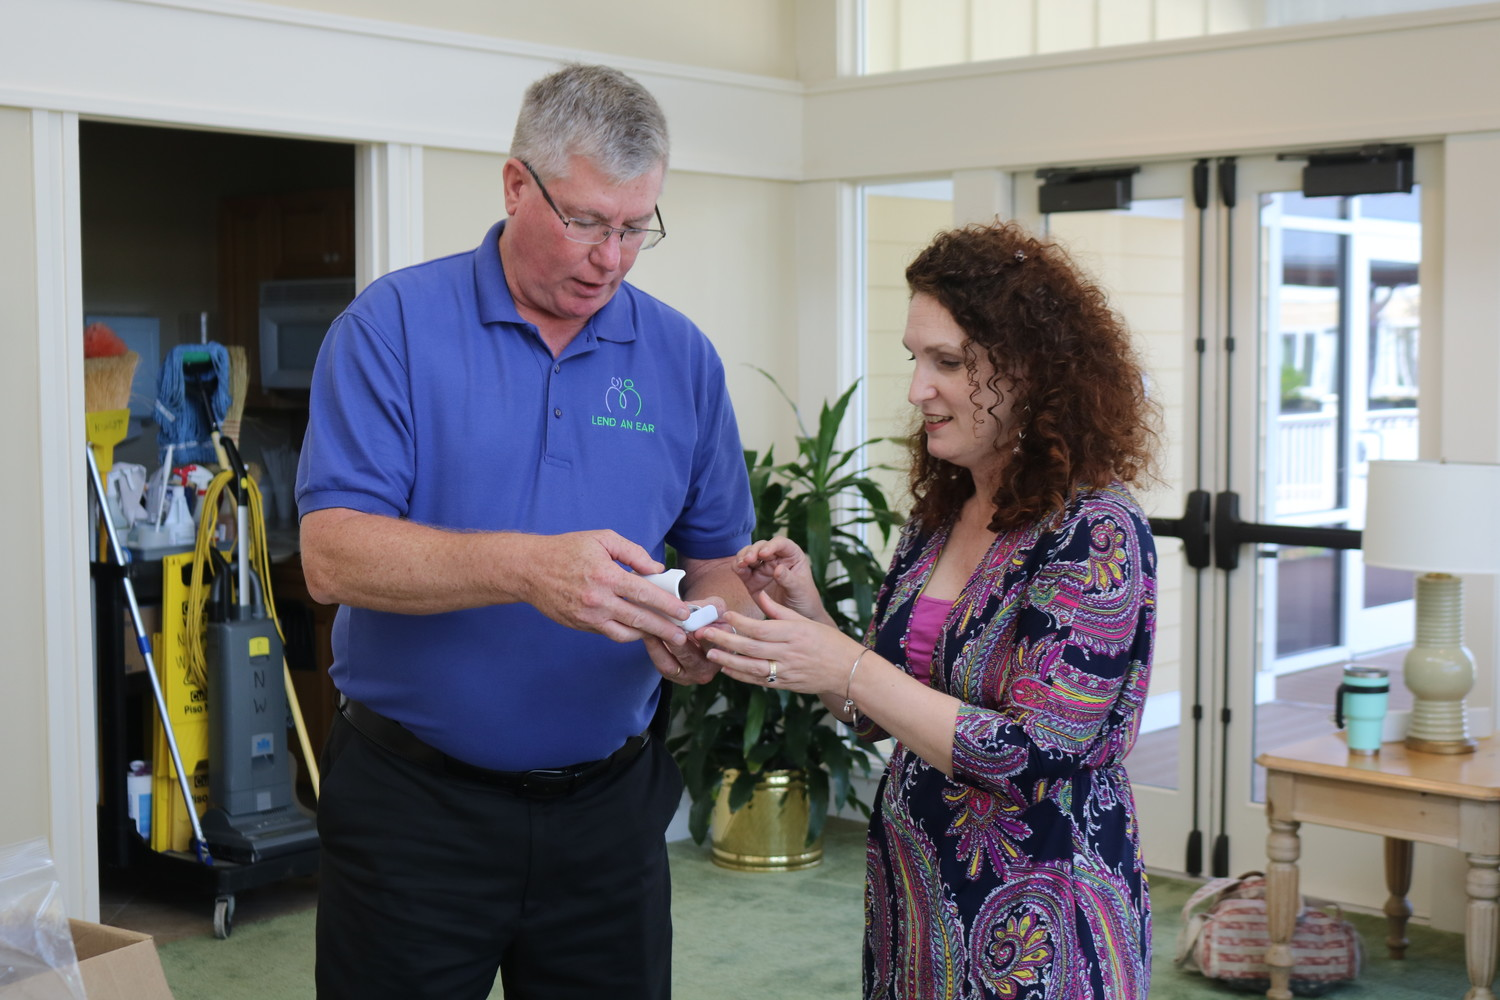 Lend an Ear Outreach Executive Director Scott Hetzinger presents a pair of hearing aids to Sonia Howley of the St. Johns County School District on Friday, Sept. 28 at Vicar's Landing.